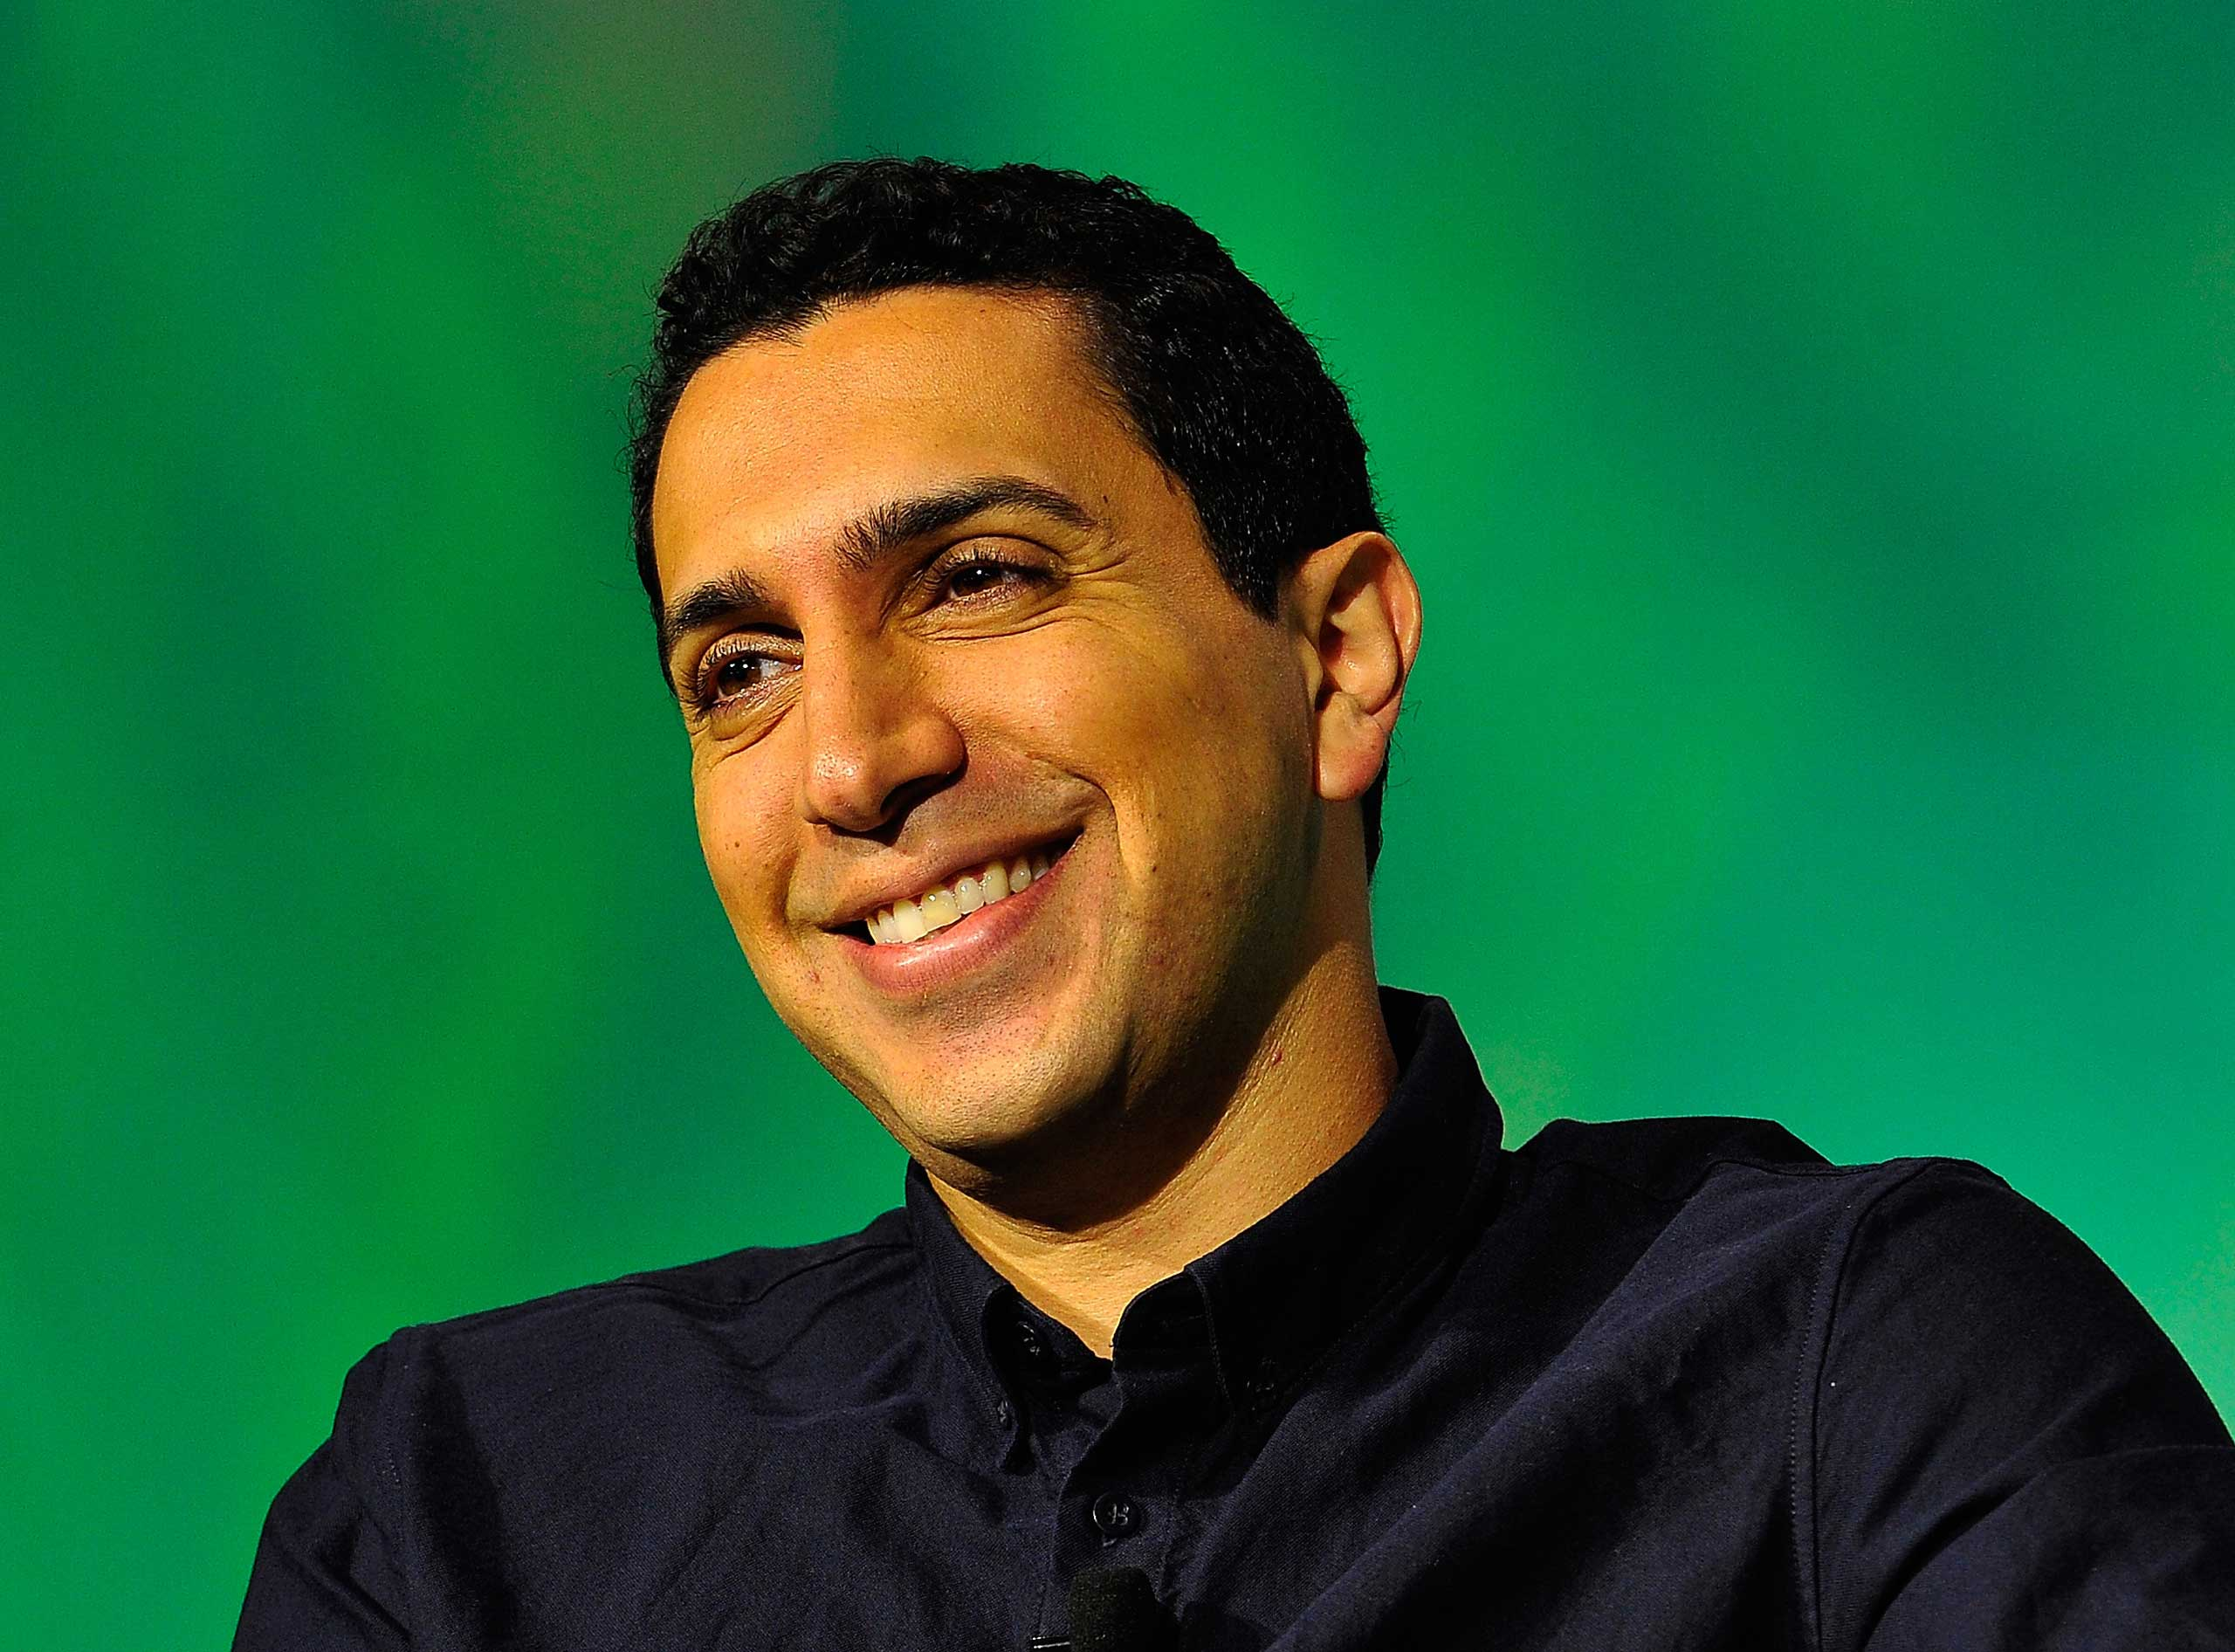 Tinder Co-Founder and CEO Sean Rad speaks onstage at TechCrunch Disrupt at Pier 48 on Sept. 10, 2014 in San Francisco.